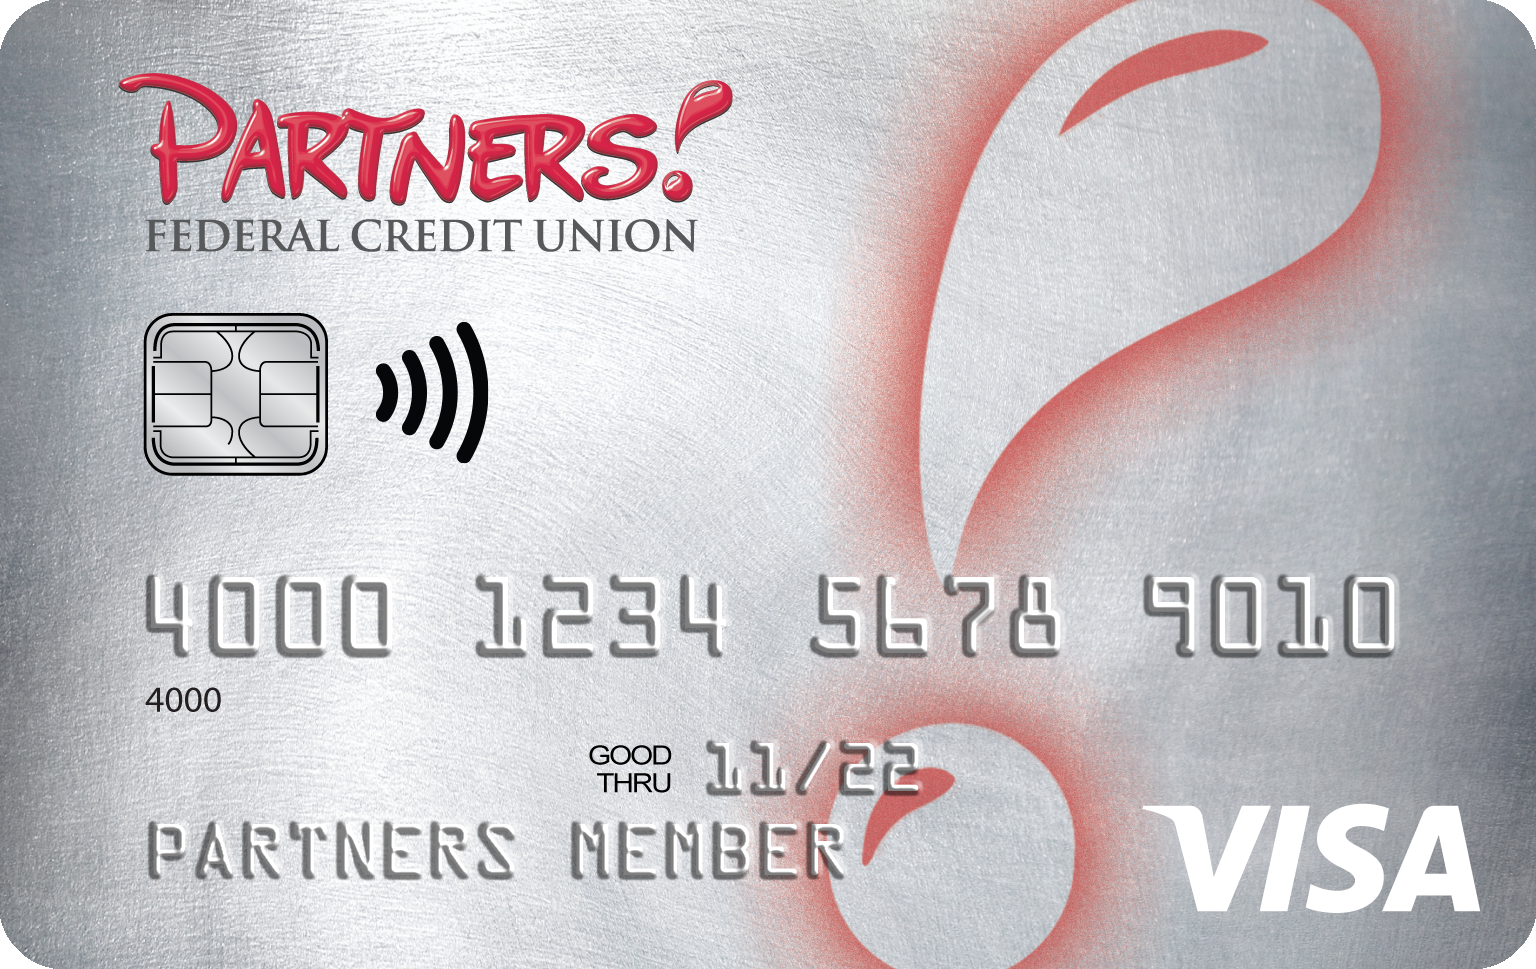 Partners-Visa-Secured-Card-withImprint